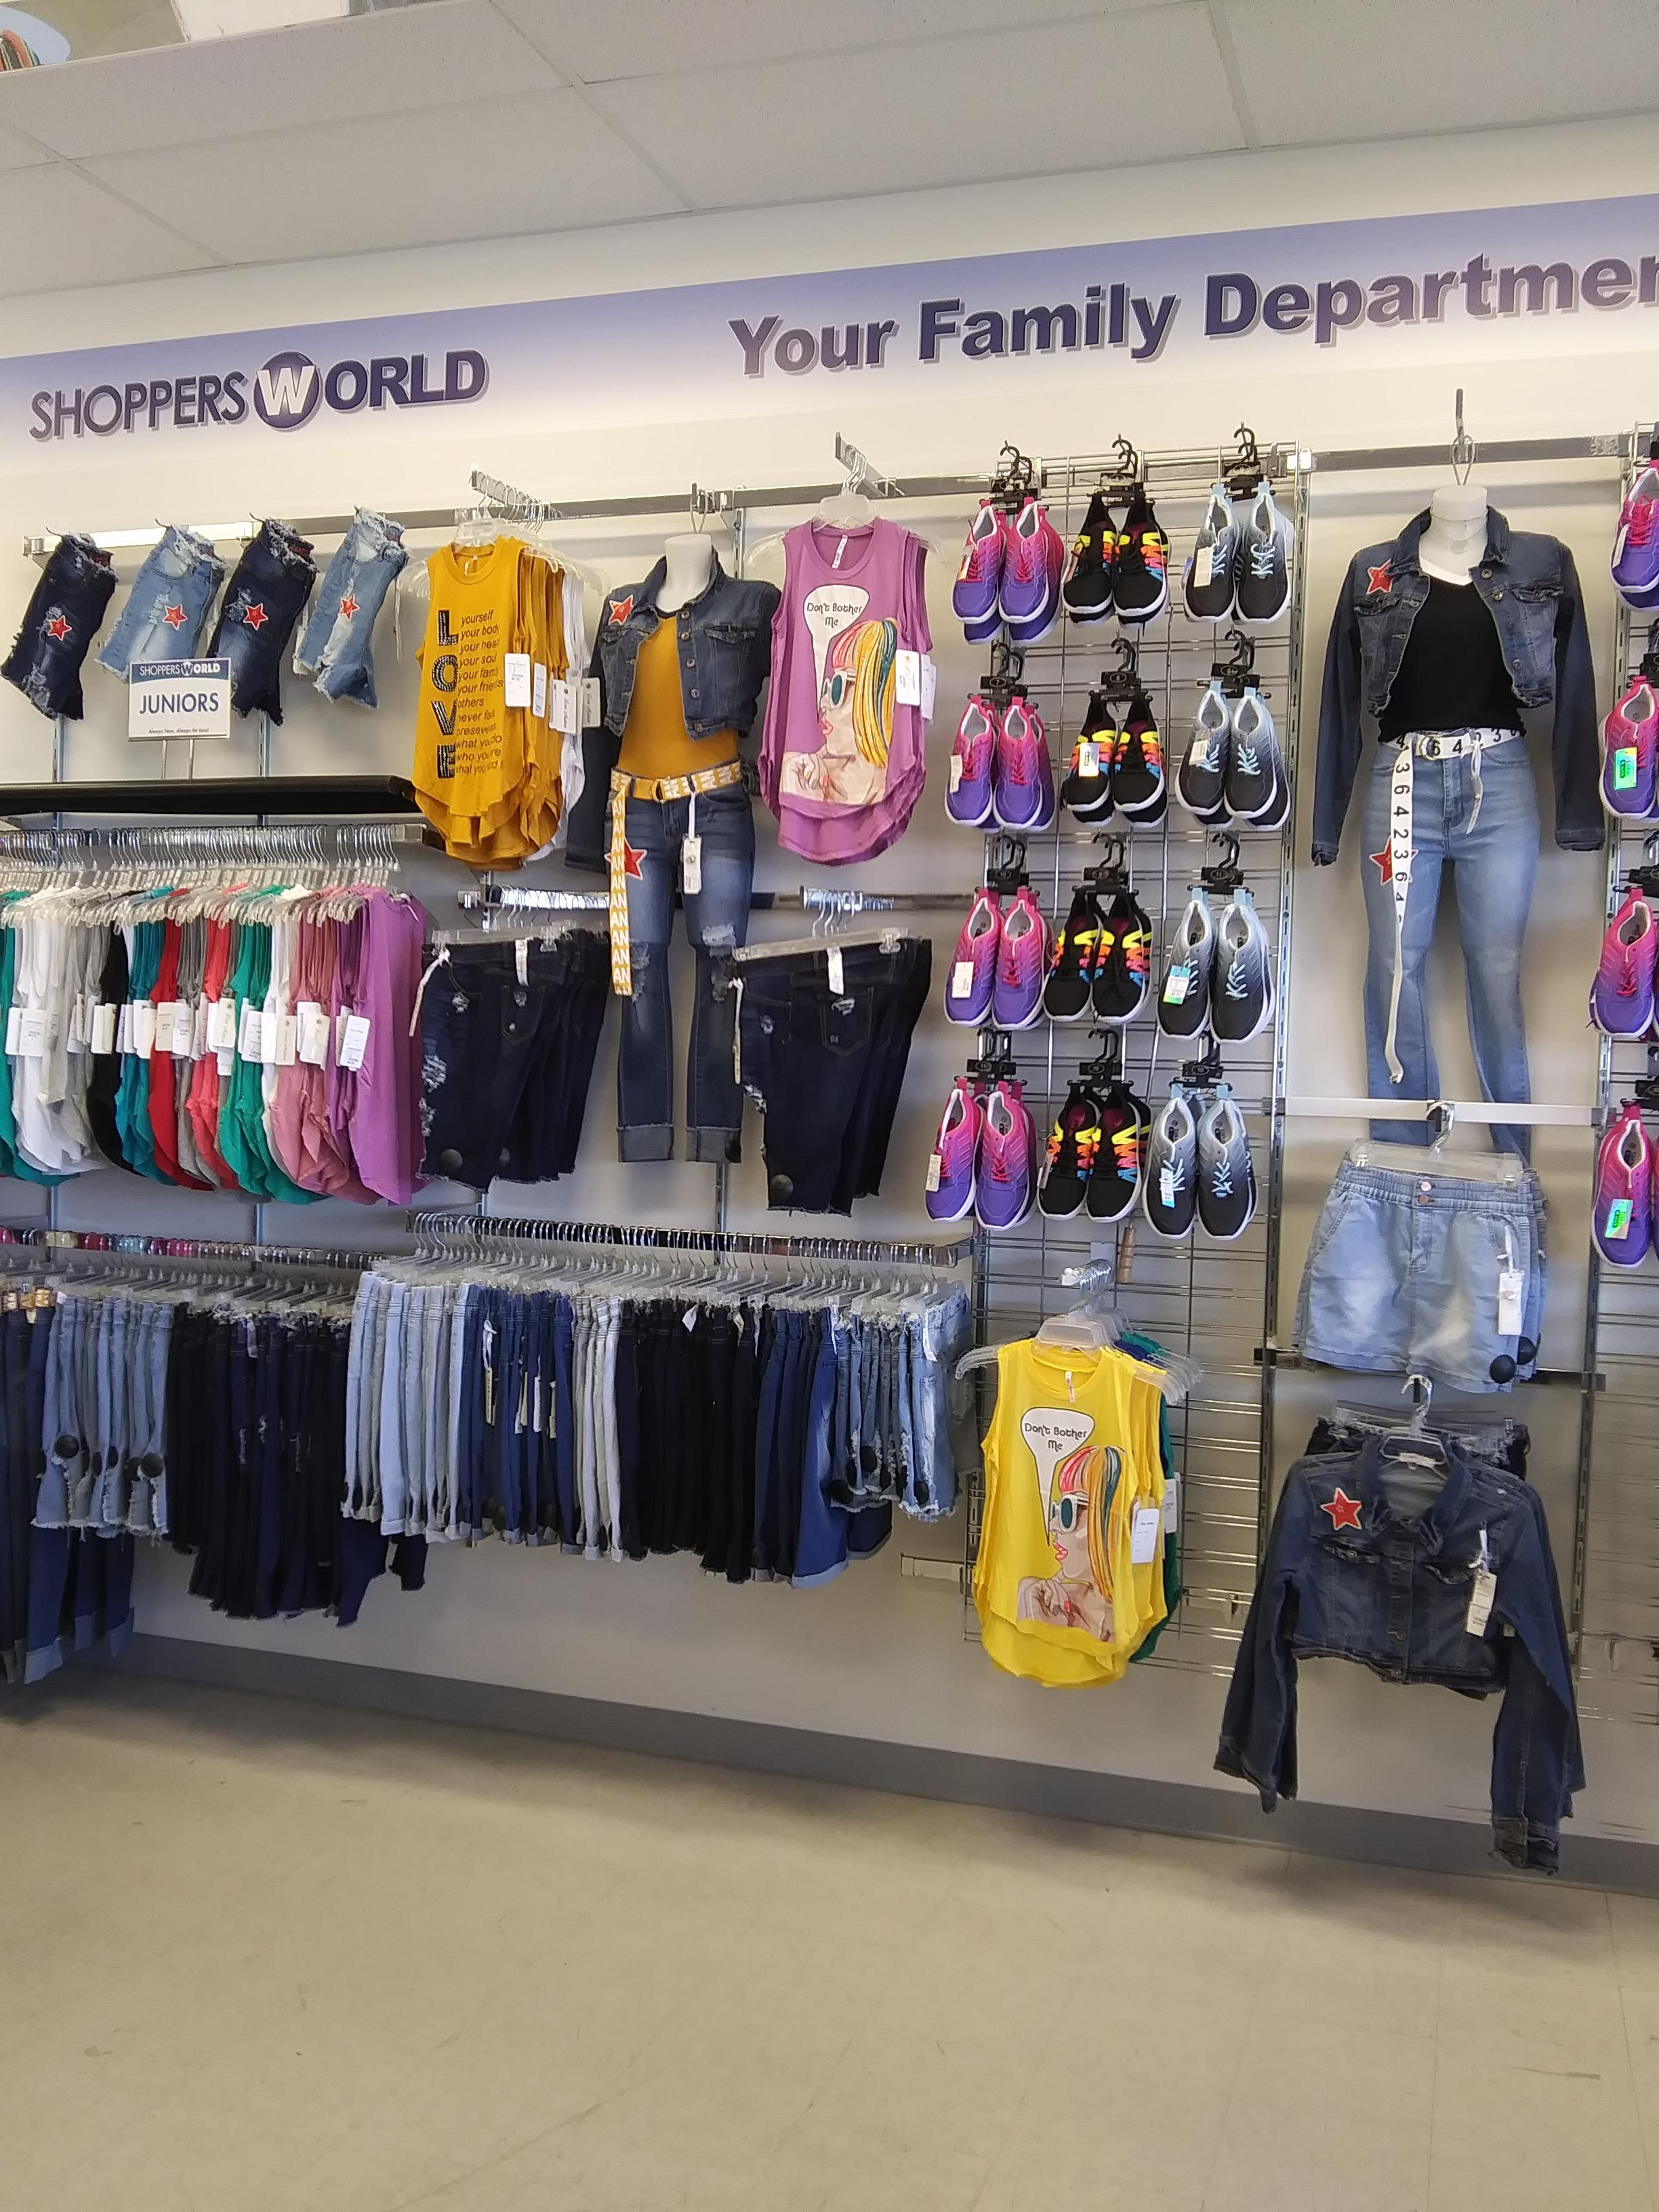 b9e5030540c Shoppers World 8311 Pendleton Pike Indianapolis, IN Clothing Retail ...